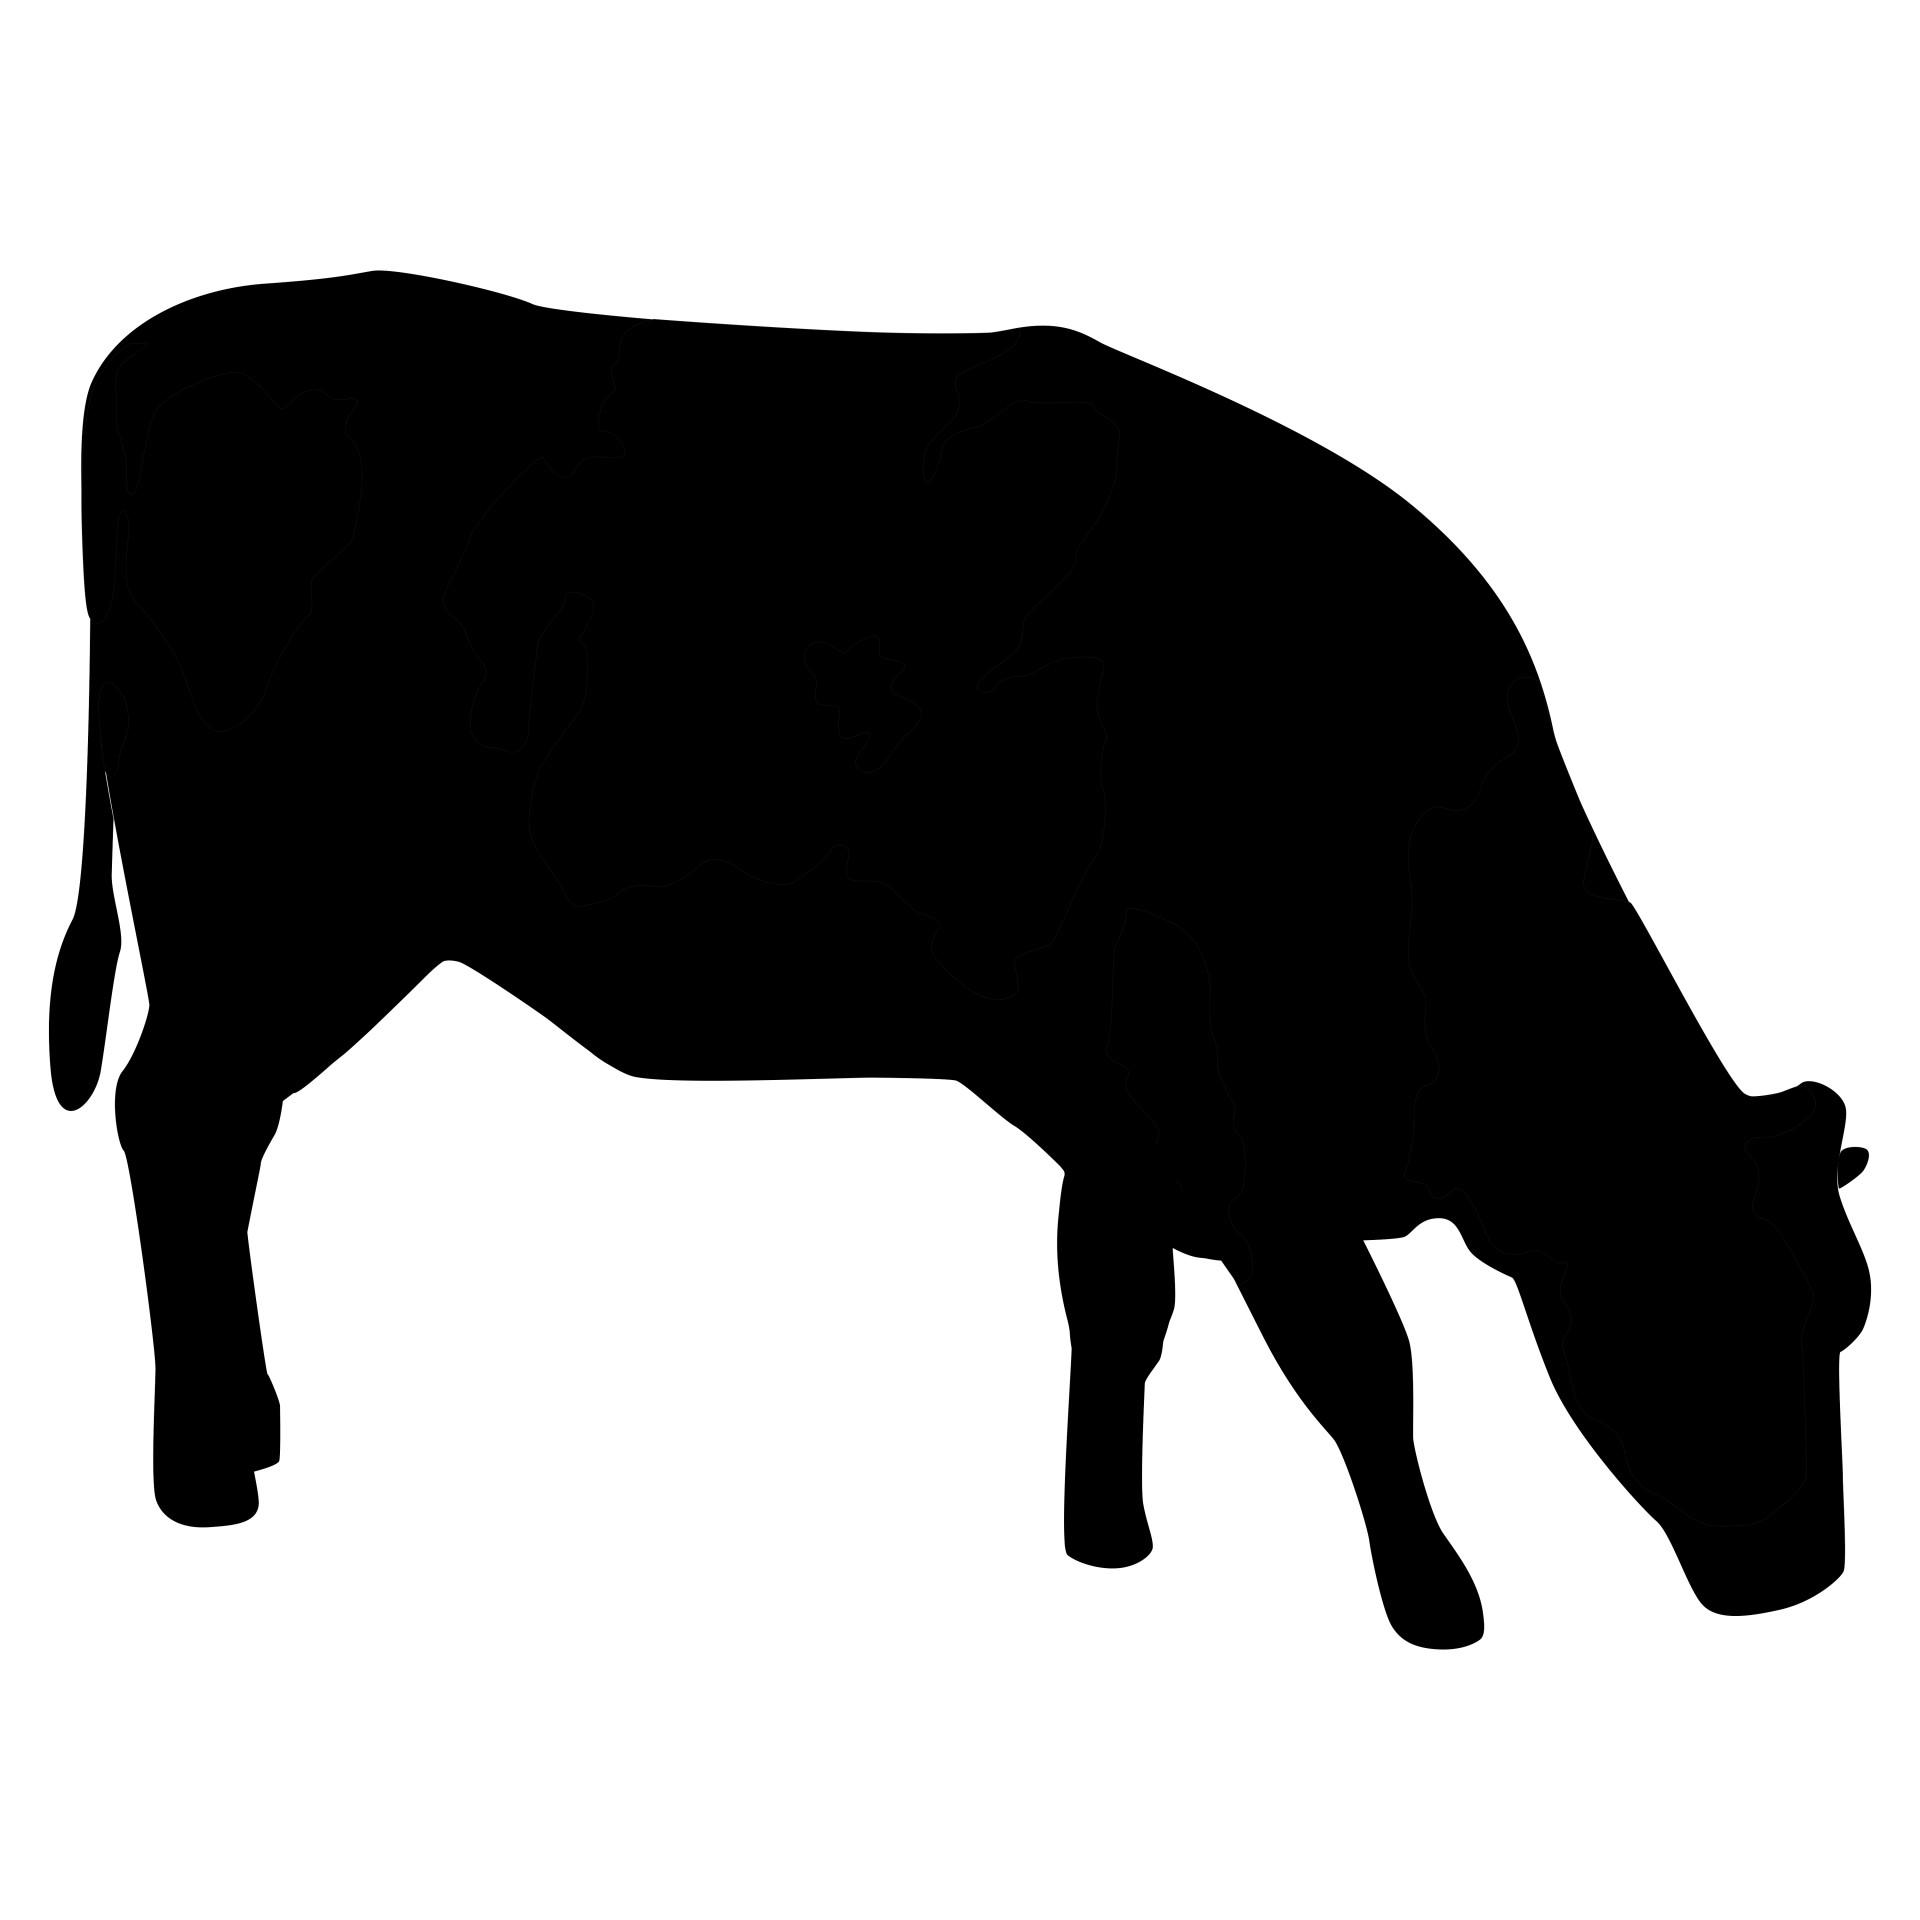 1920x1920 Cow Silhouette Free Stock Photo